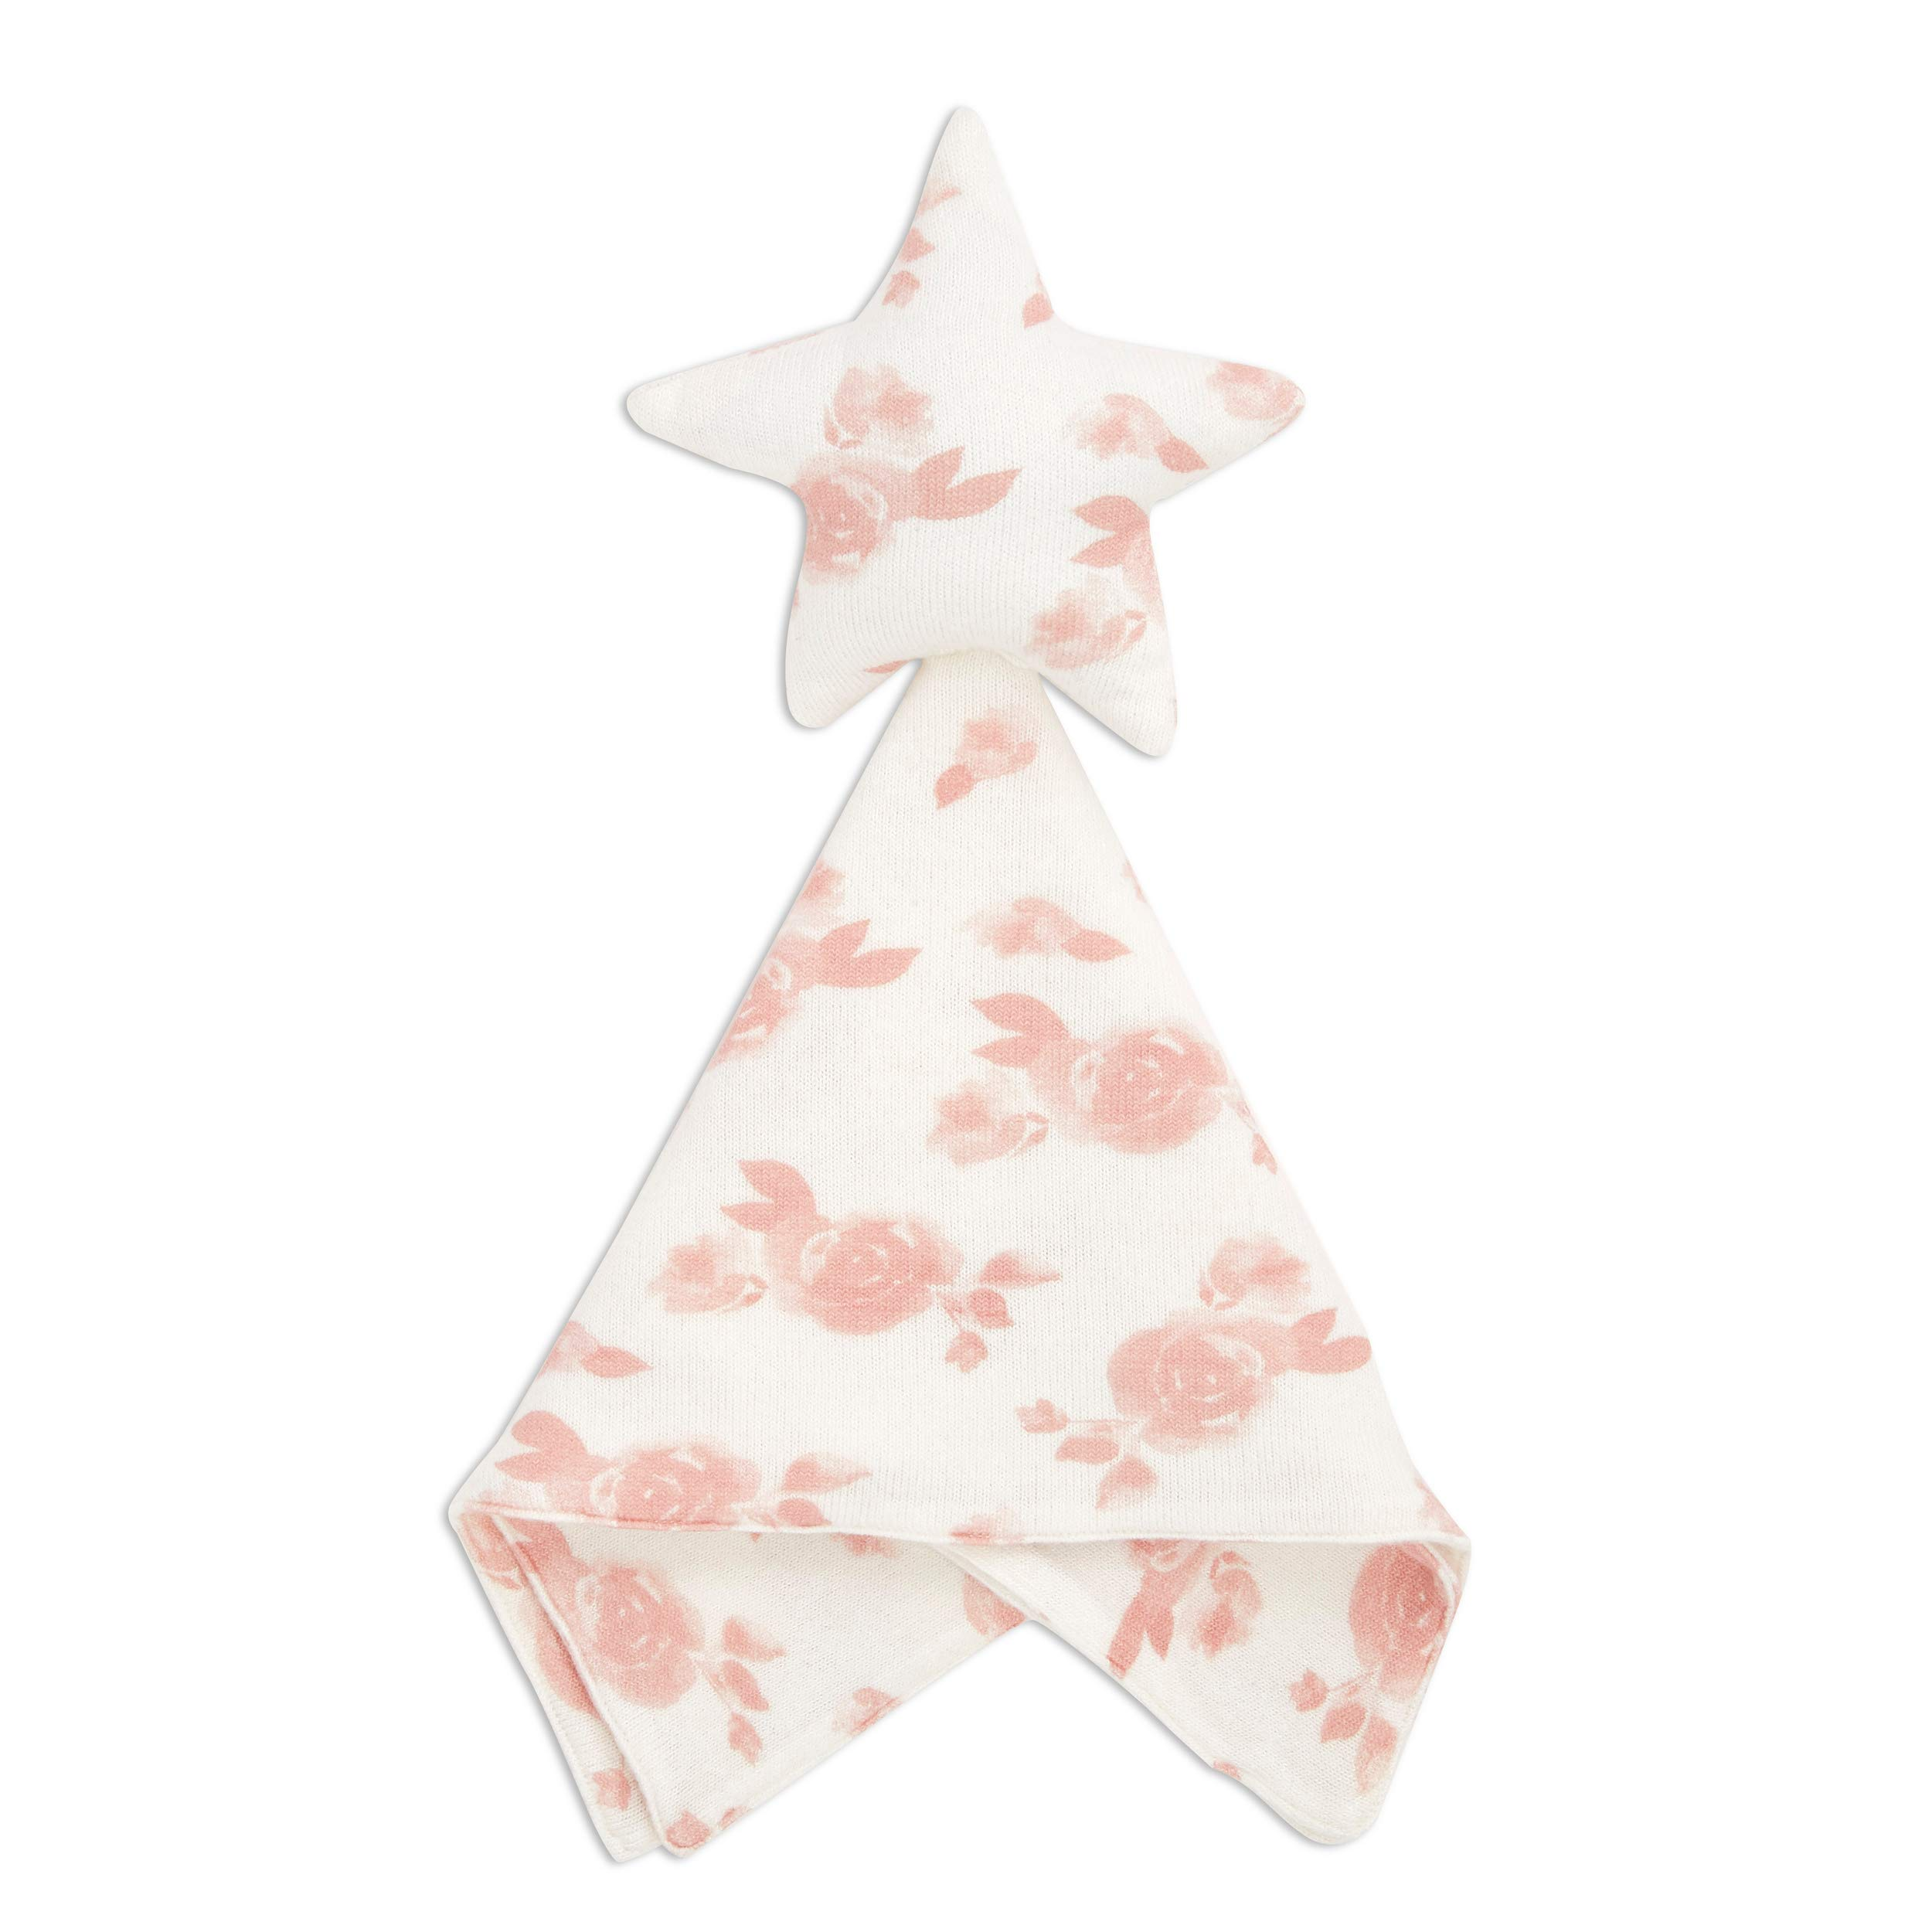 aden + anais Snuggle Knit Star Baby Lovey Comfort Item, Super Soft and Stretchy Security Blanket, Rosettes